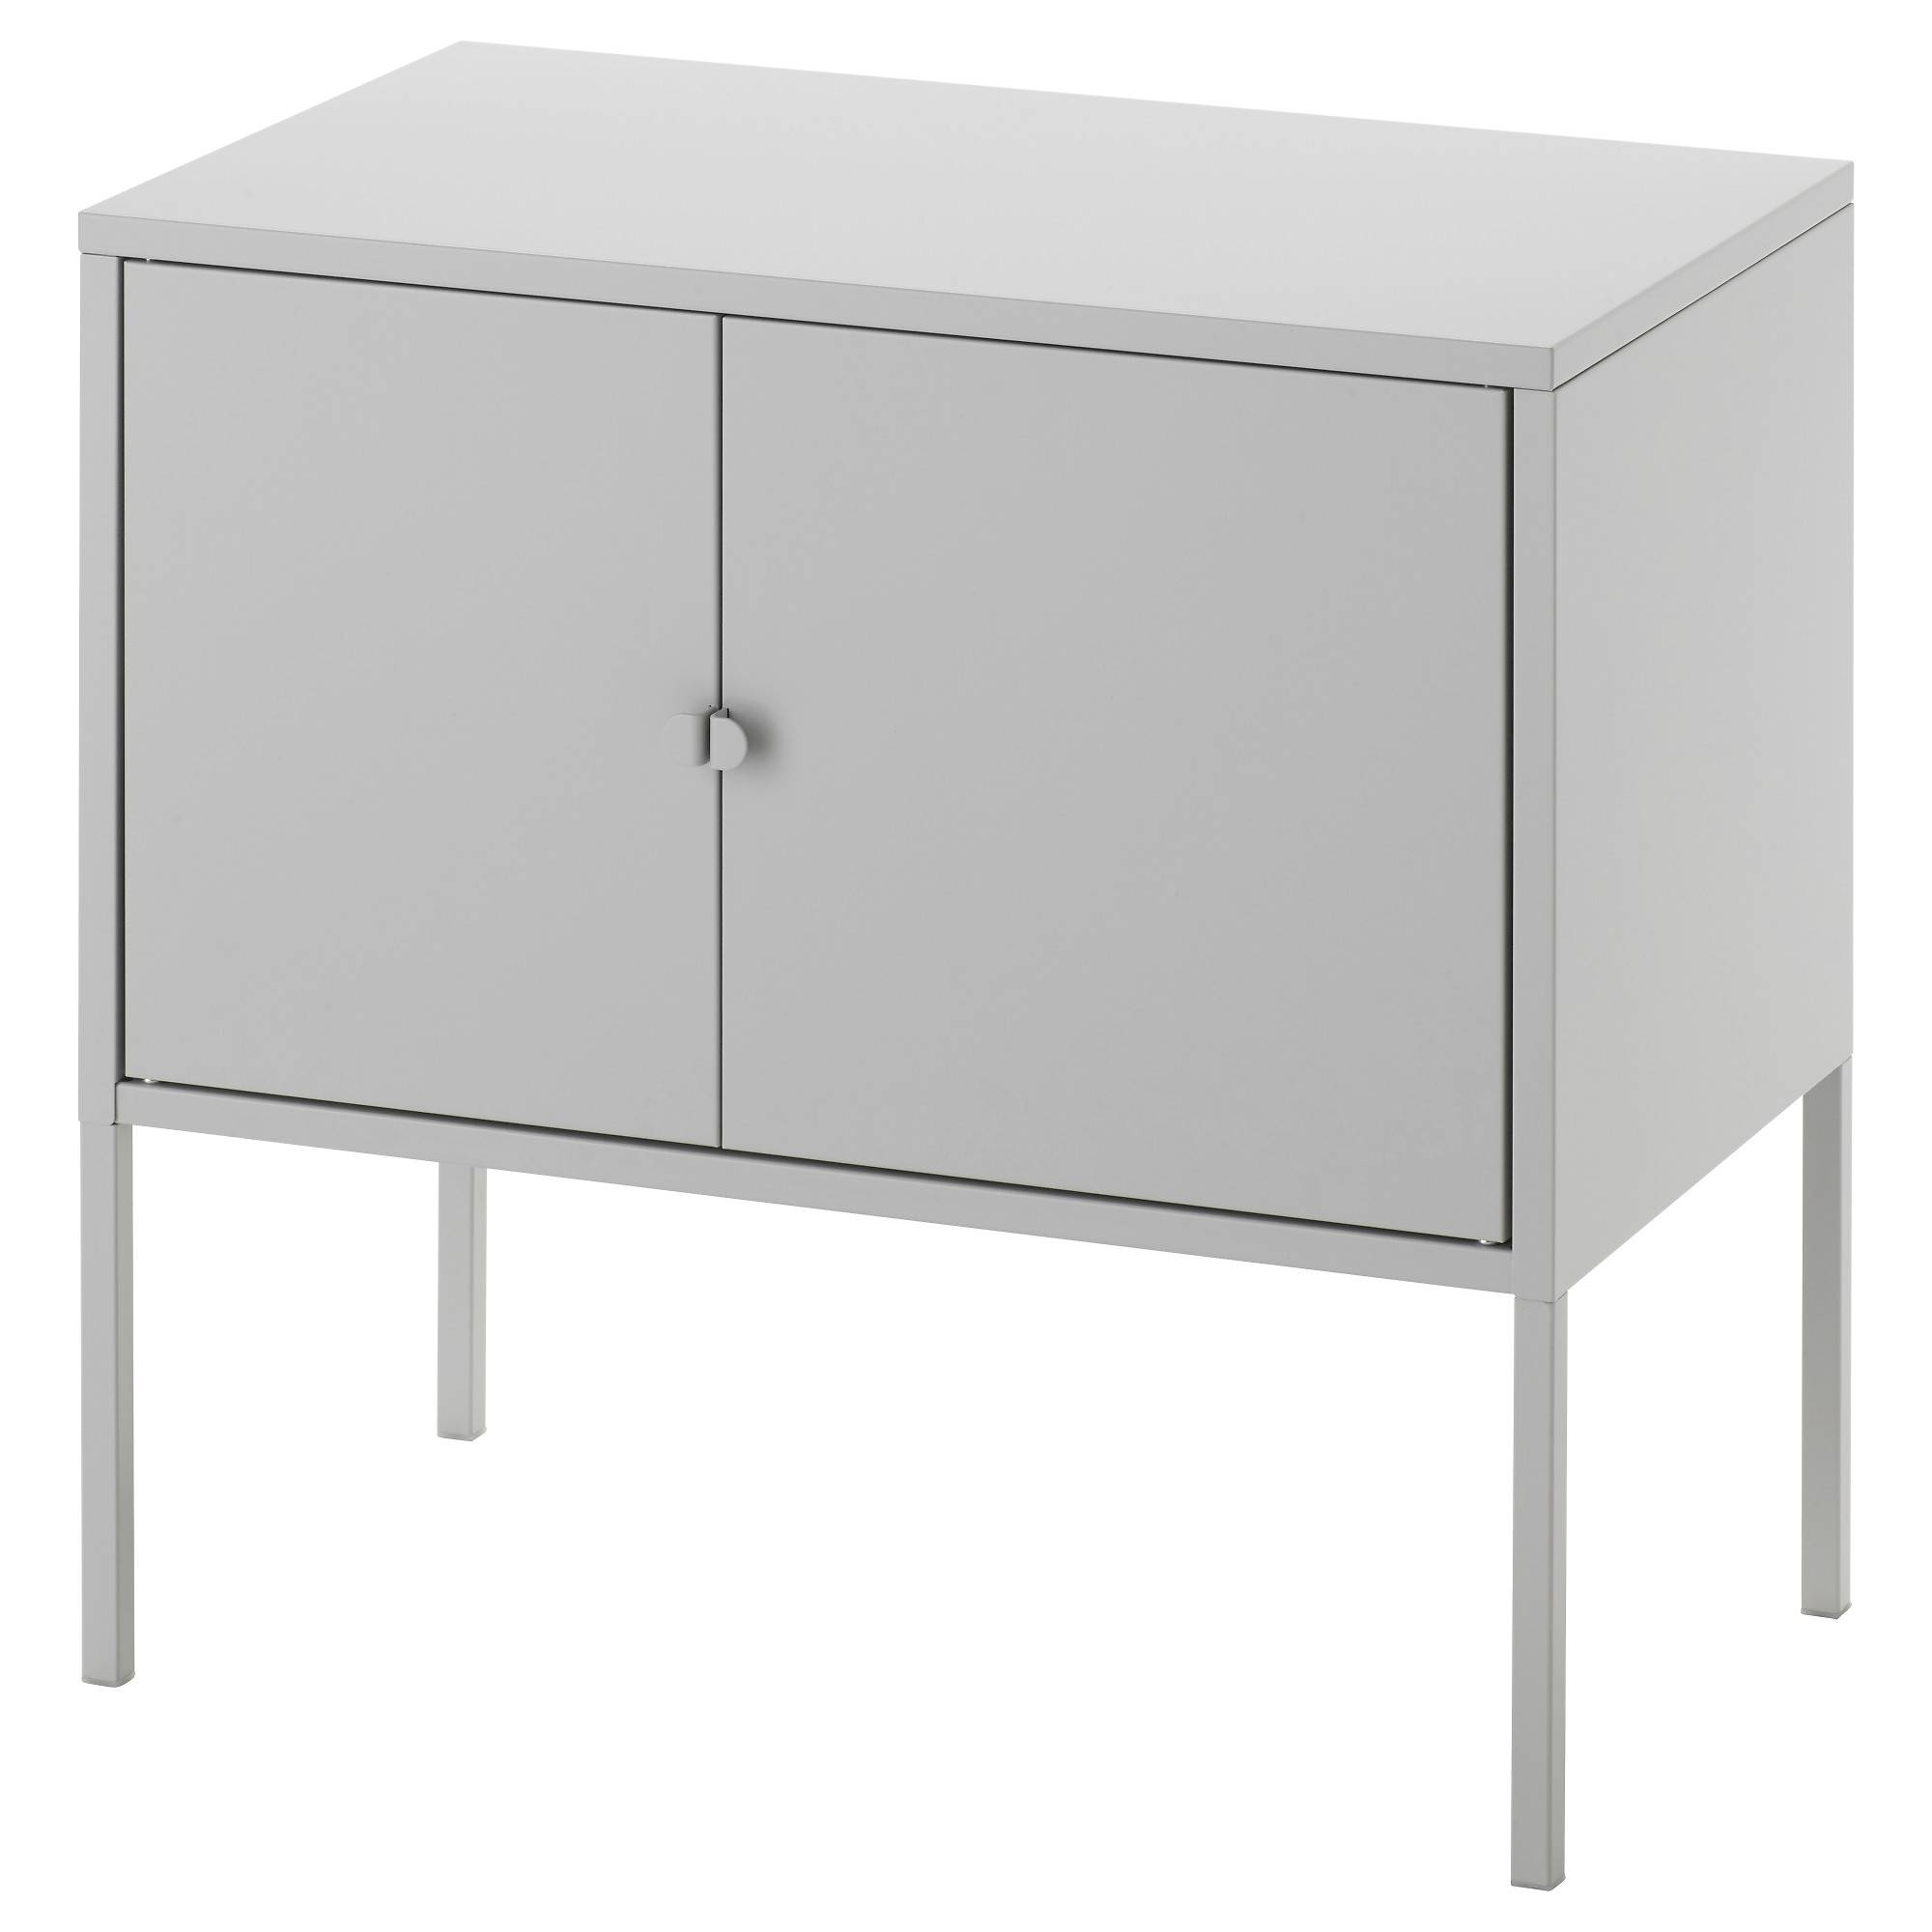 Lixhult Cabinet Metal/grey 60x35 Cm – Ikea With Recent Ikea Sideboards (View 8 of 15)